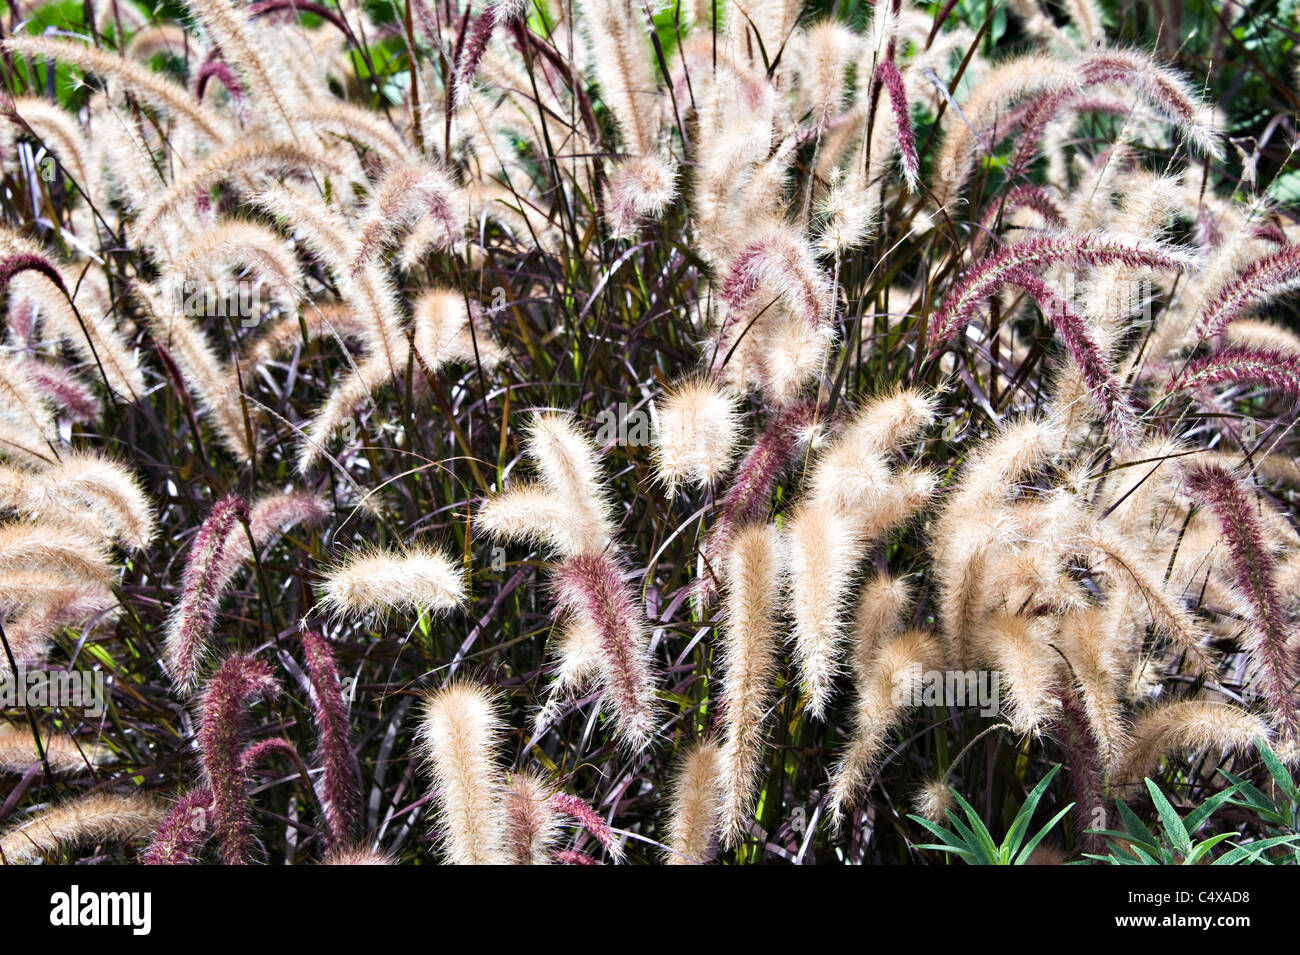 The Perennial Grass Purpureum Or Red Fountain Grass Growing In